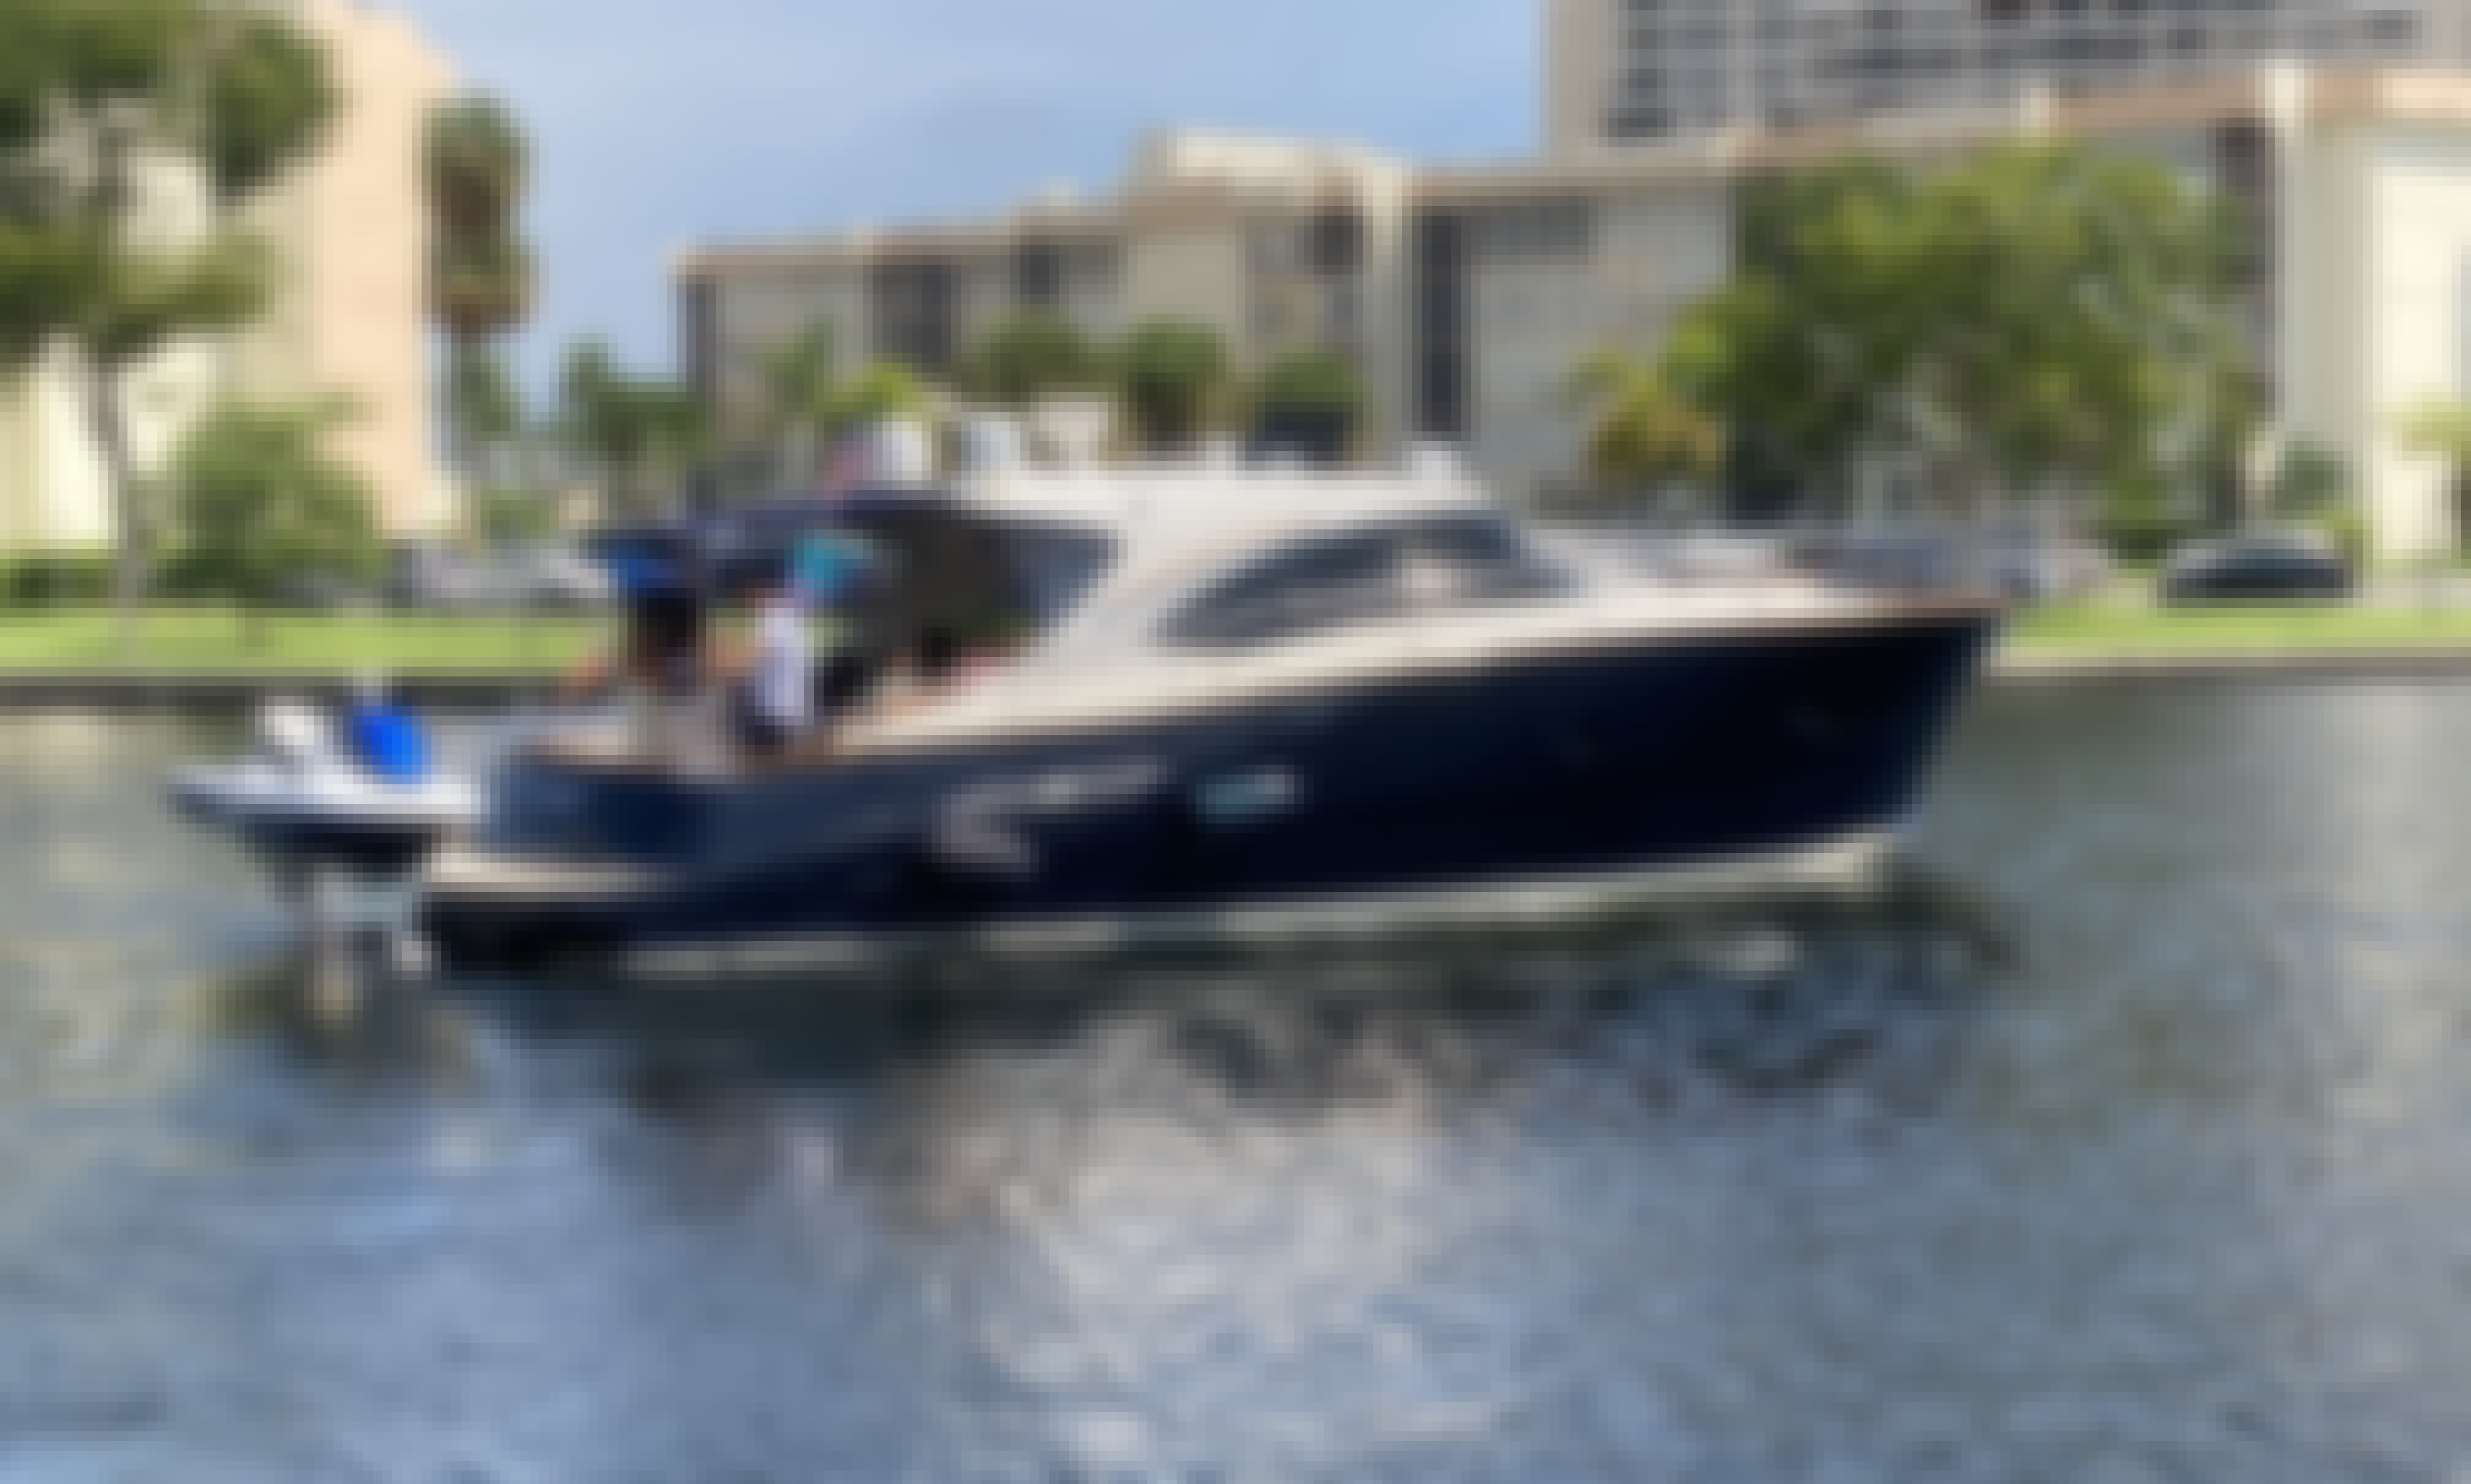 SEXY ITALIAN Austin Parker 44' Luxury Yacht for Charter in Miami